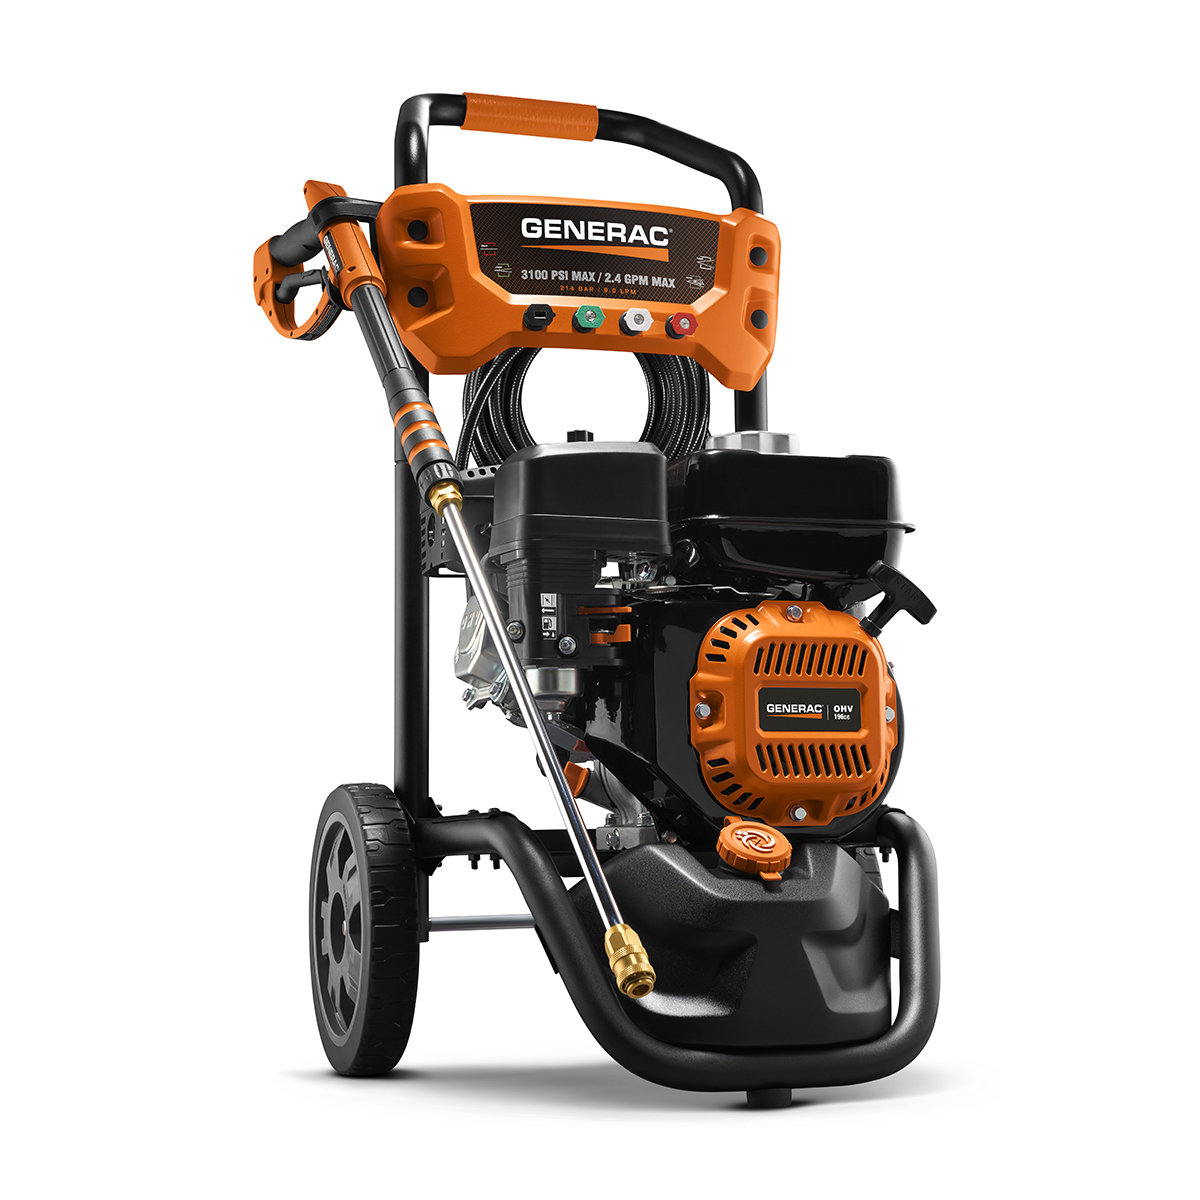 Generac 6923- 3100-PSI 2.4-GPM Axial Cam Pump Gas Pressure Washer by Generac Power Systems